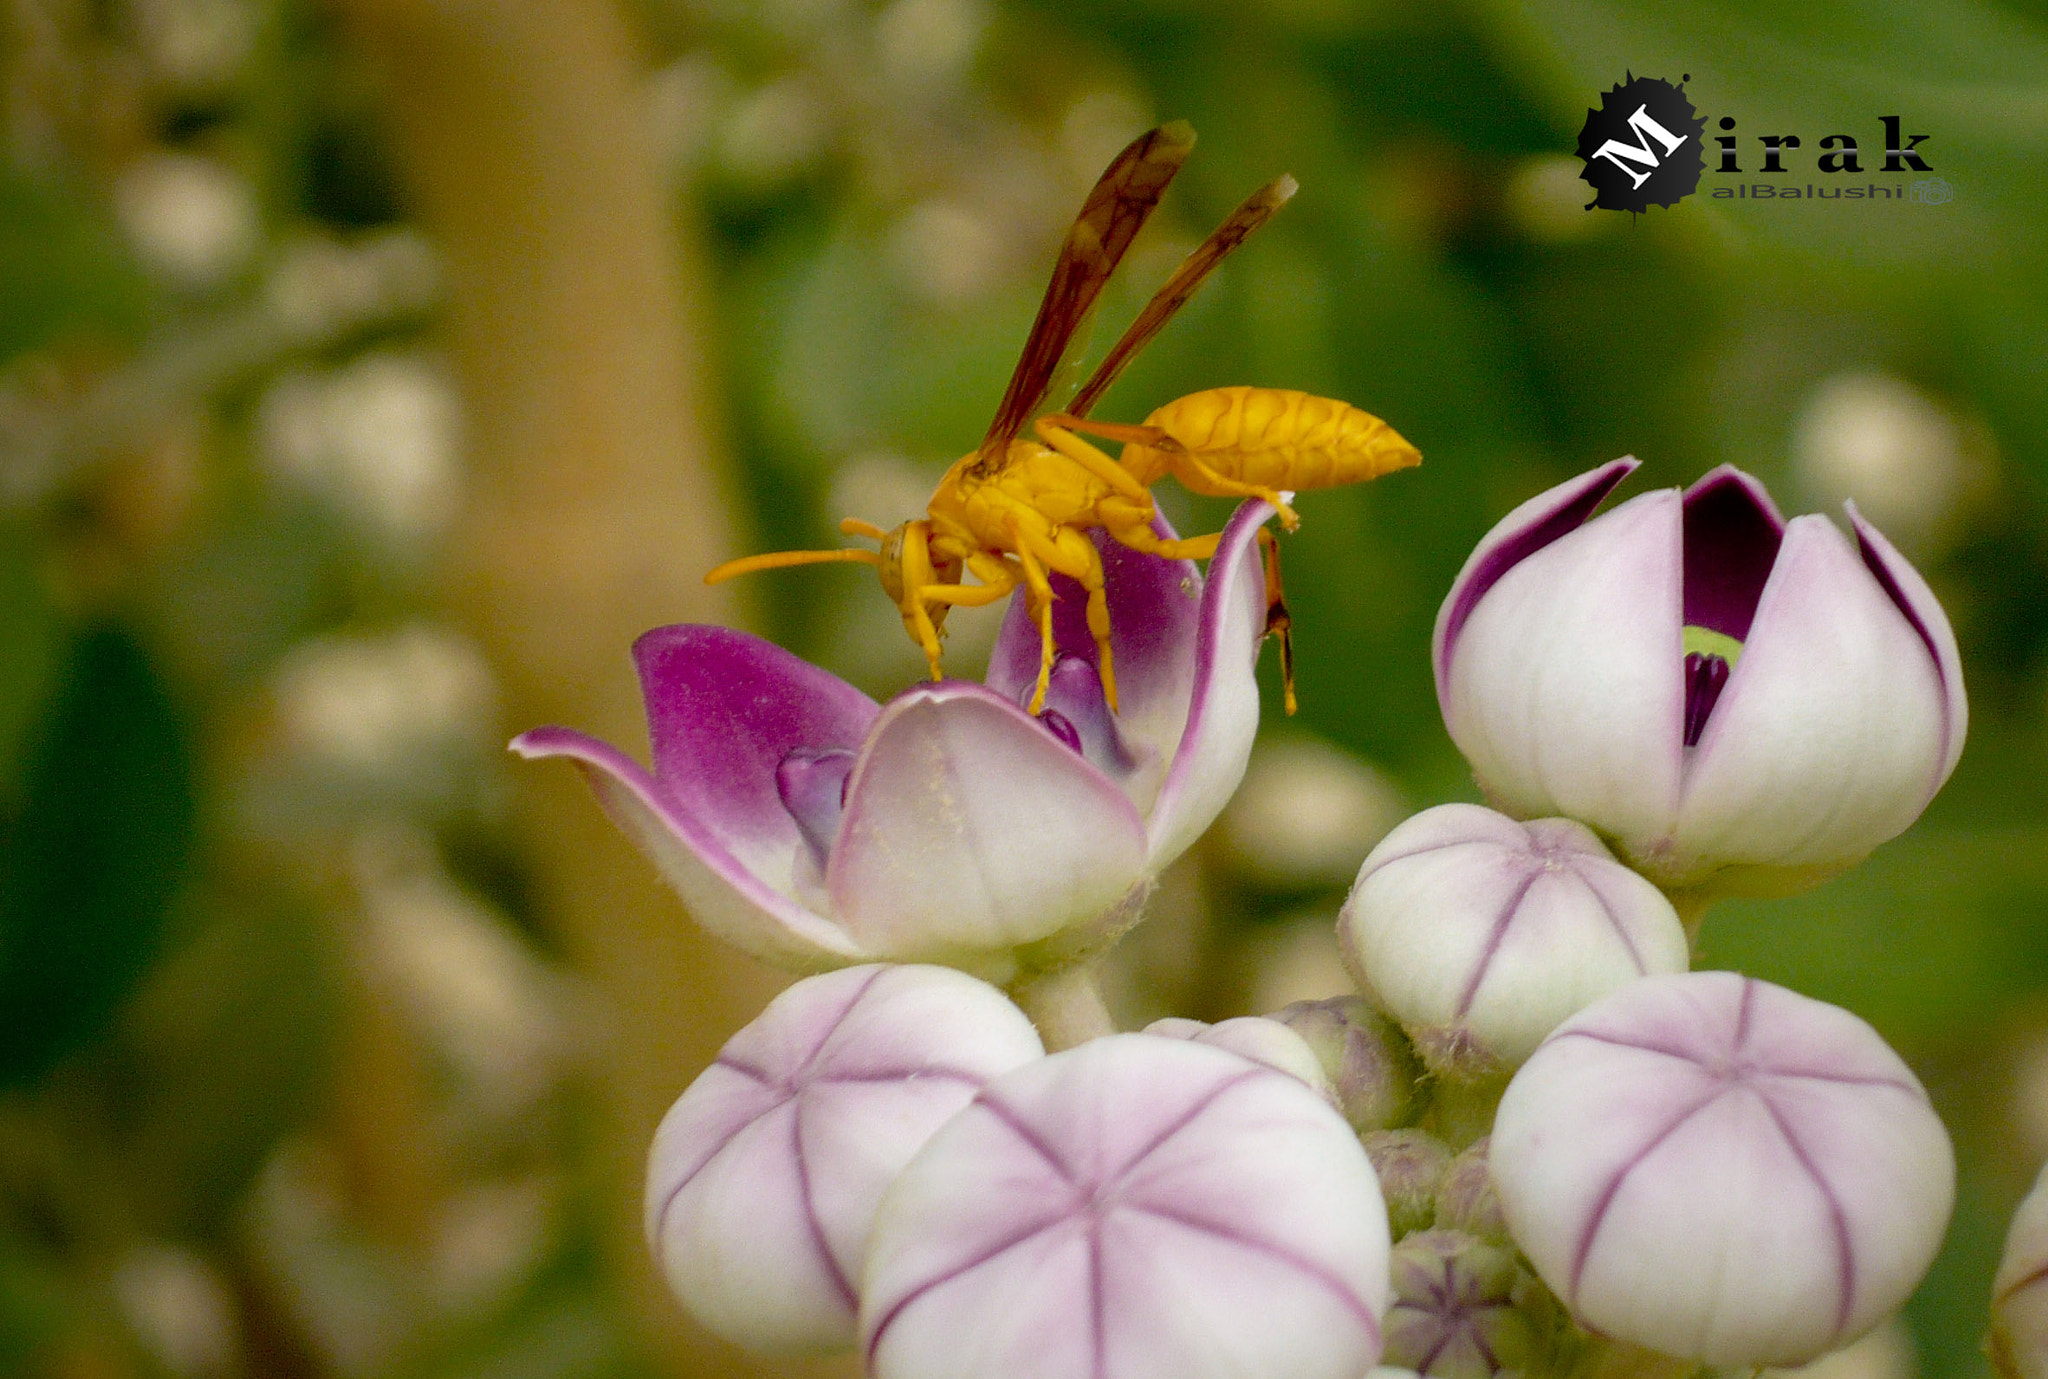 Photograph ......on flower by Mirak alBalushi on 500px